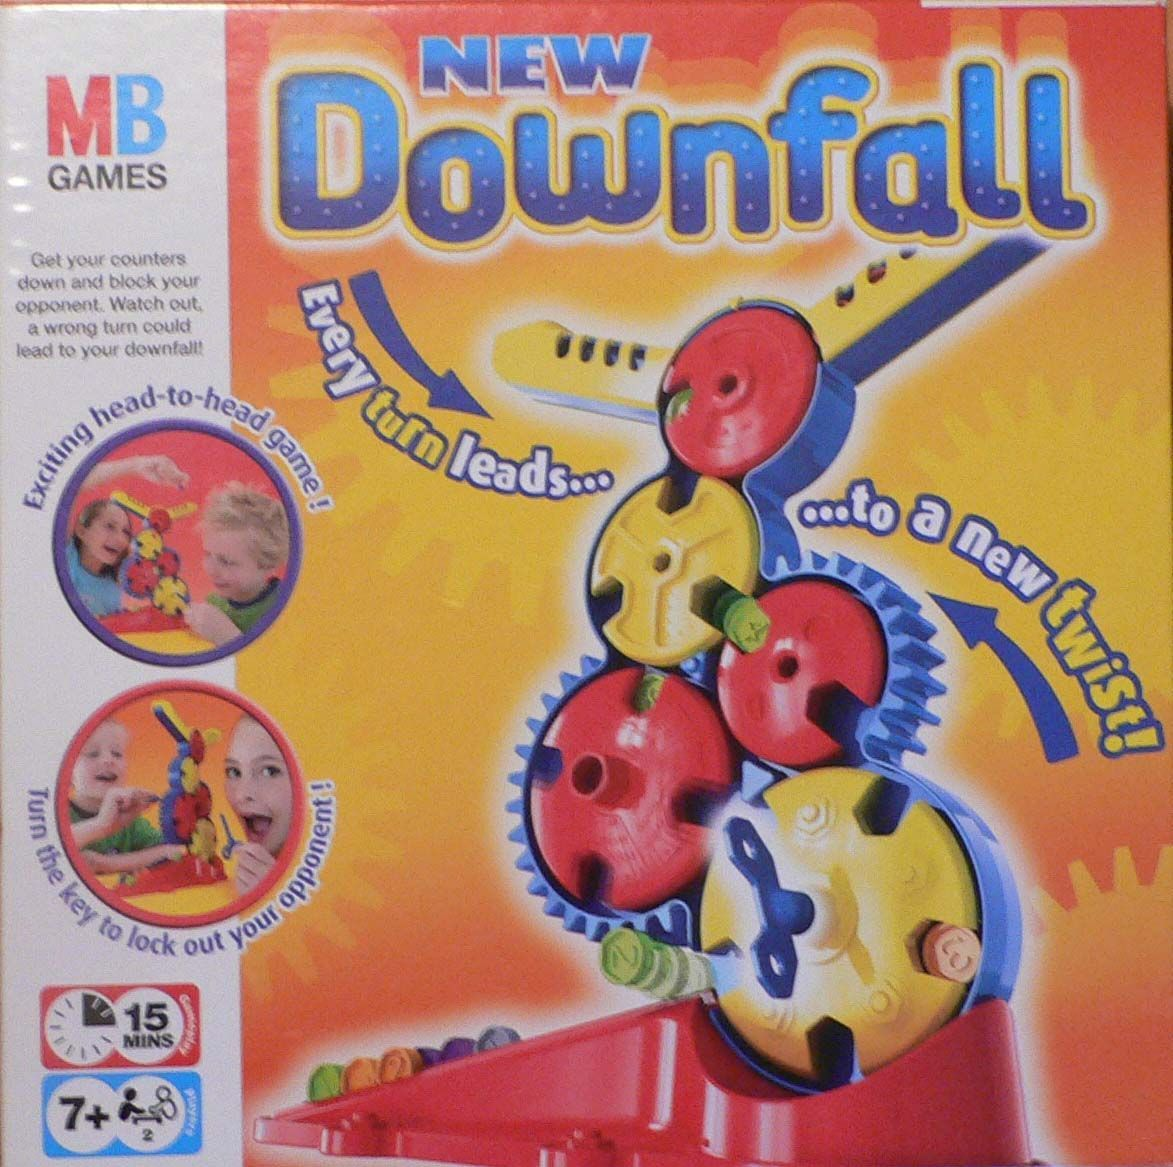 Downspin